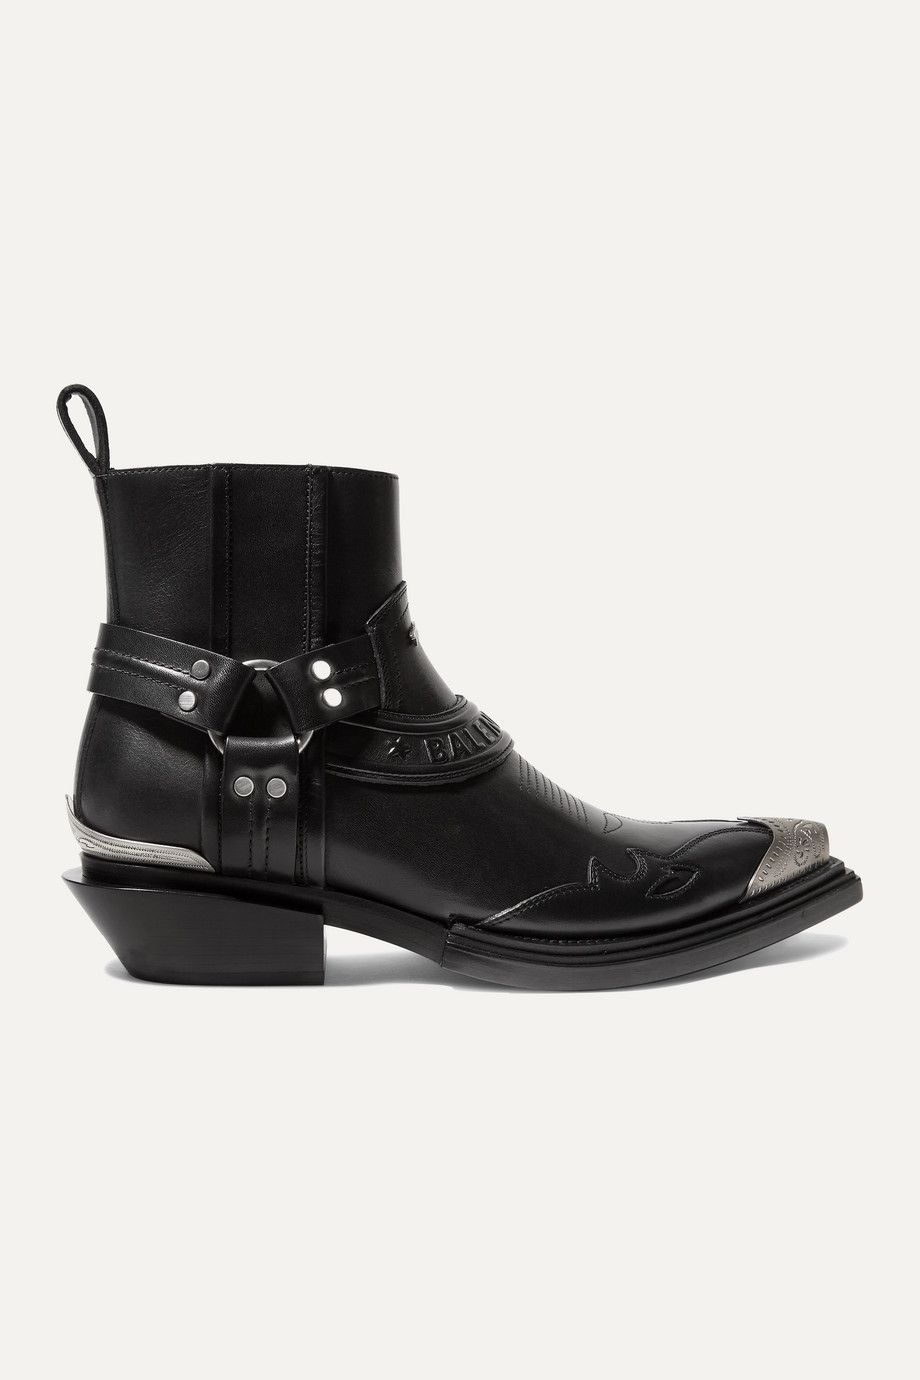 balenciaga-santiag-leather-ankle-boots